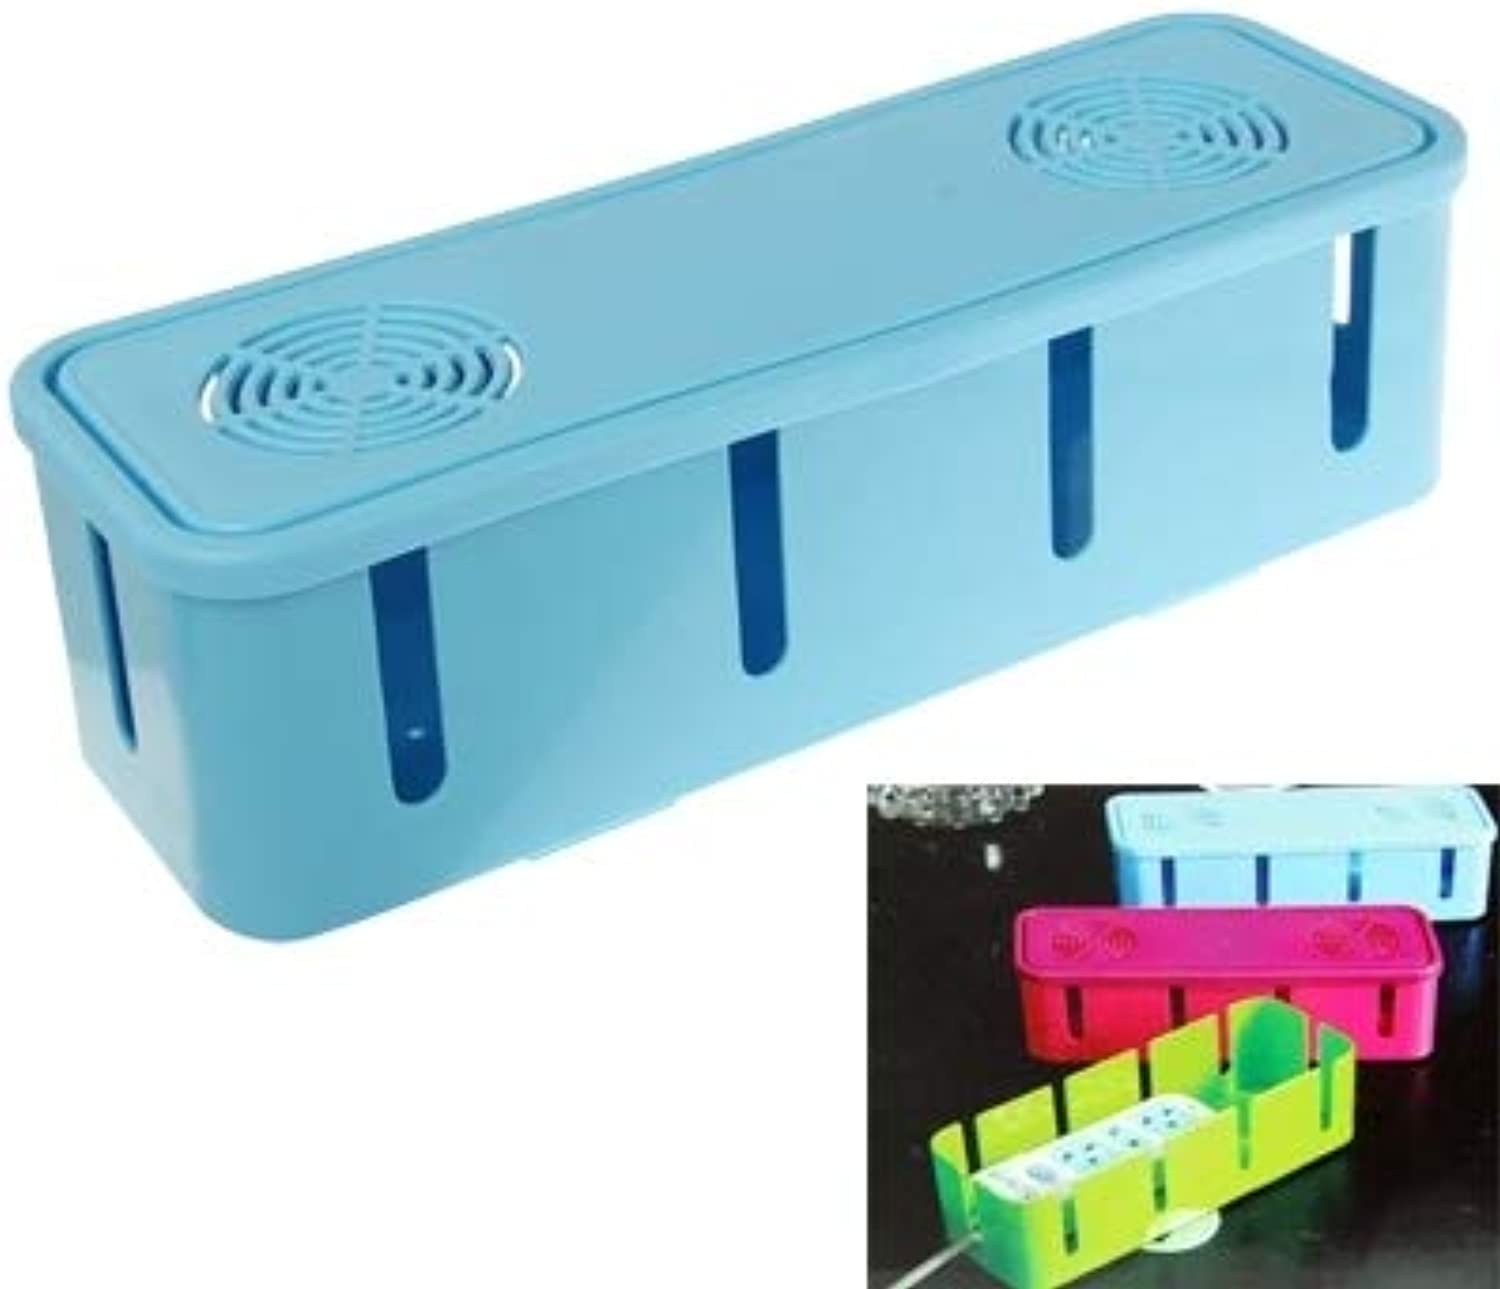 Beautify Storage Organizer Box Electric Power Wire Cable Winder Socket, Size  265 x 88 x 75mm Practical